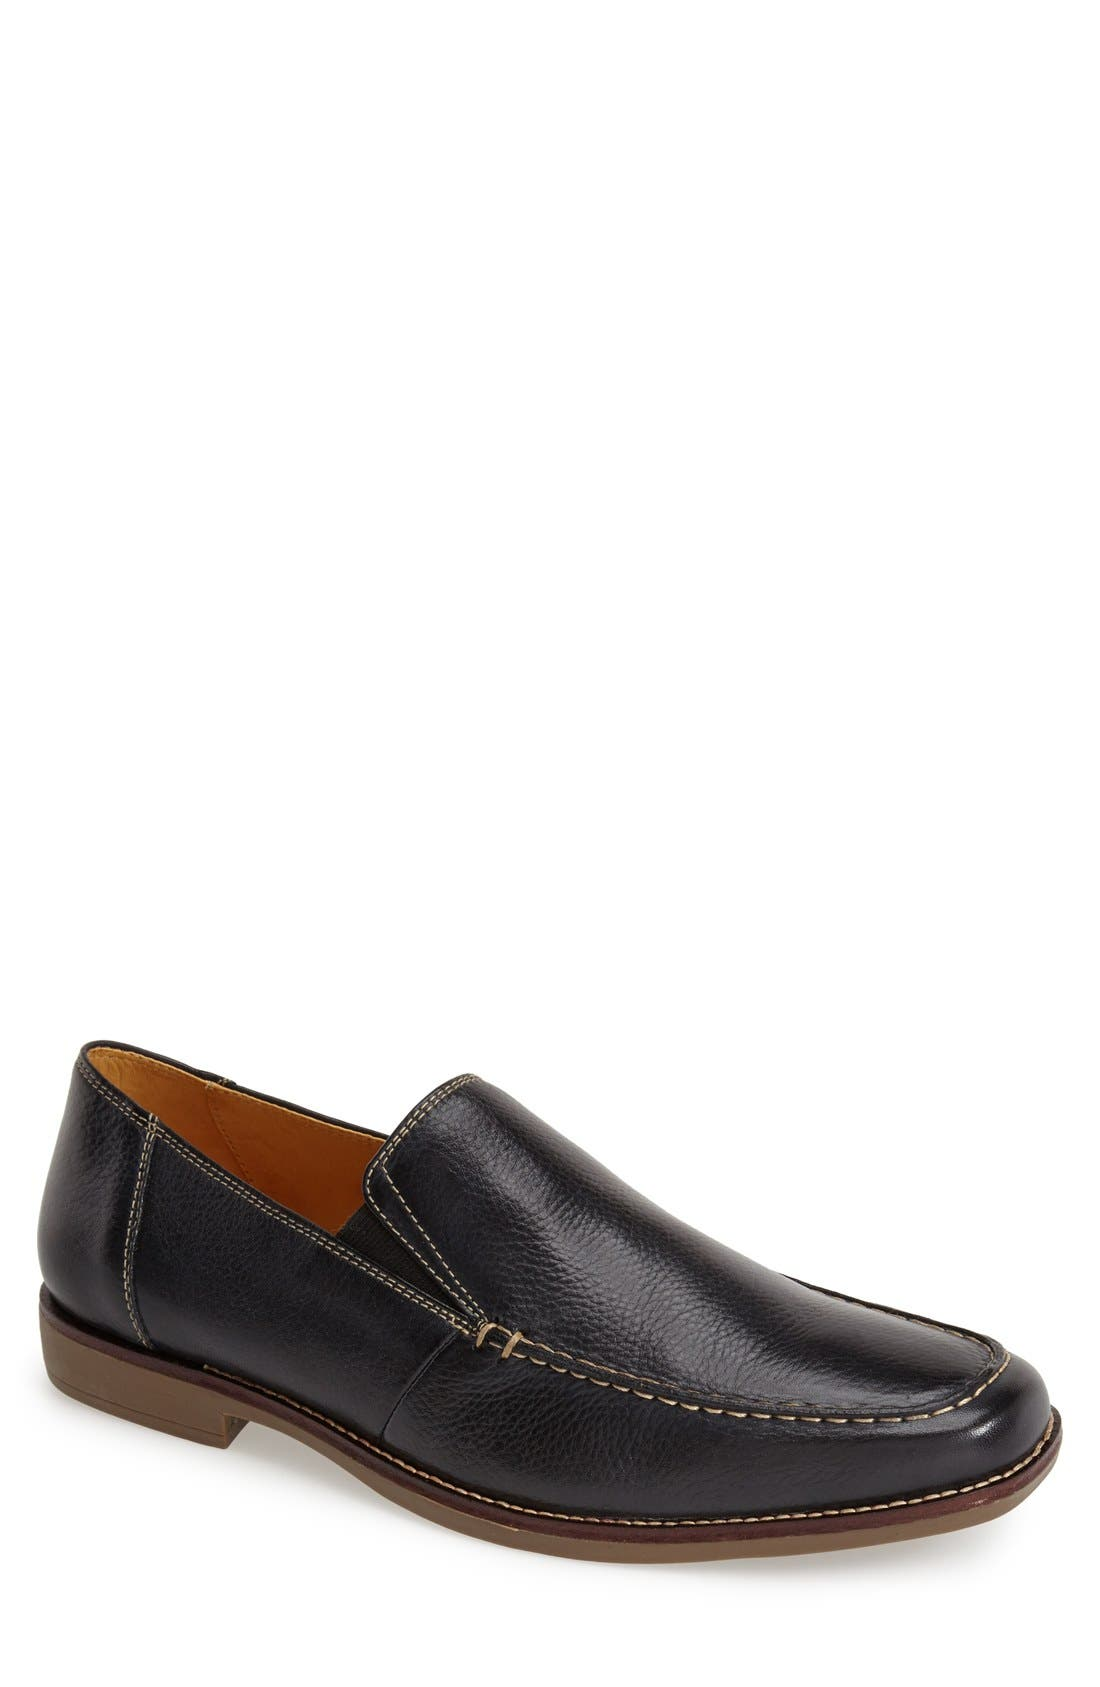 'Easy' Leather Venetian Loafer,                         Main,                         color, NAVY